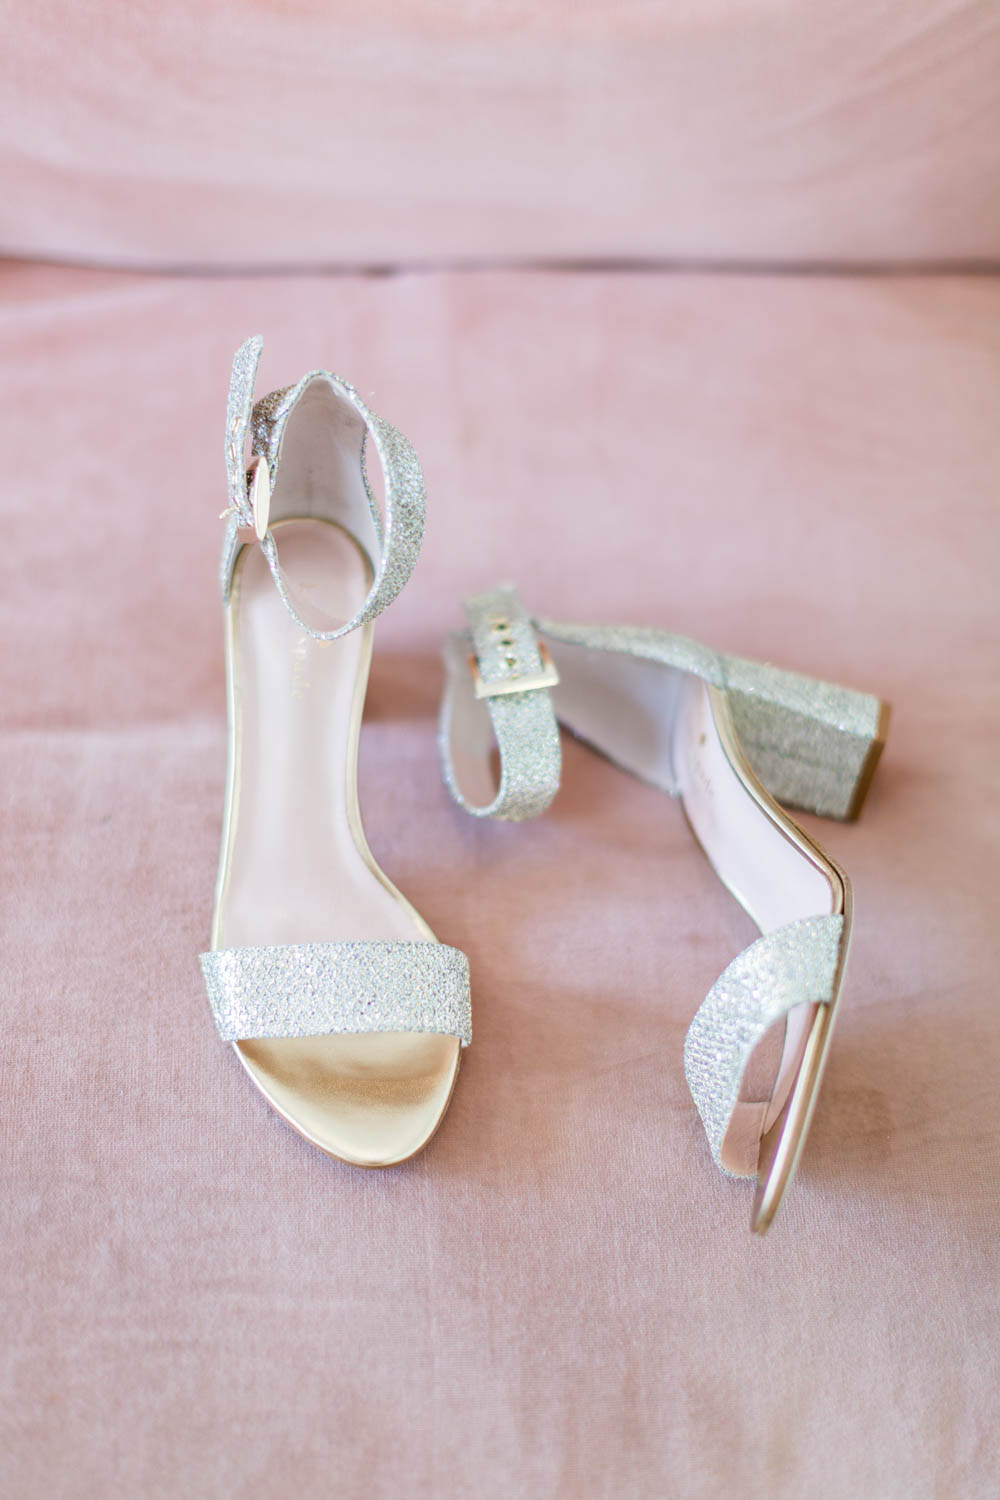 Kate Spade glitter thick wedding heels on a pink sofa, Cavin Elizabeth Photography